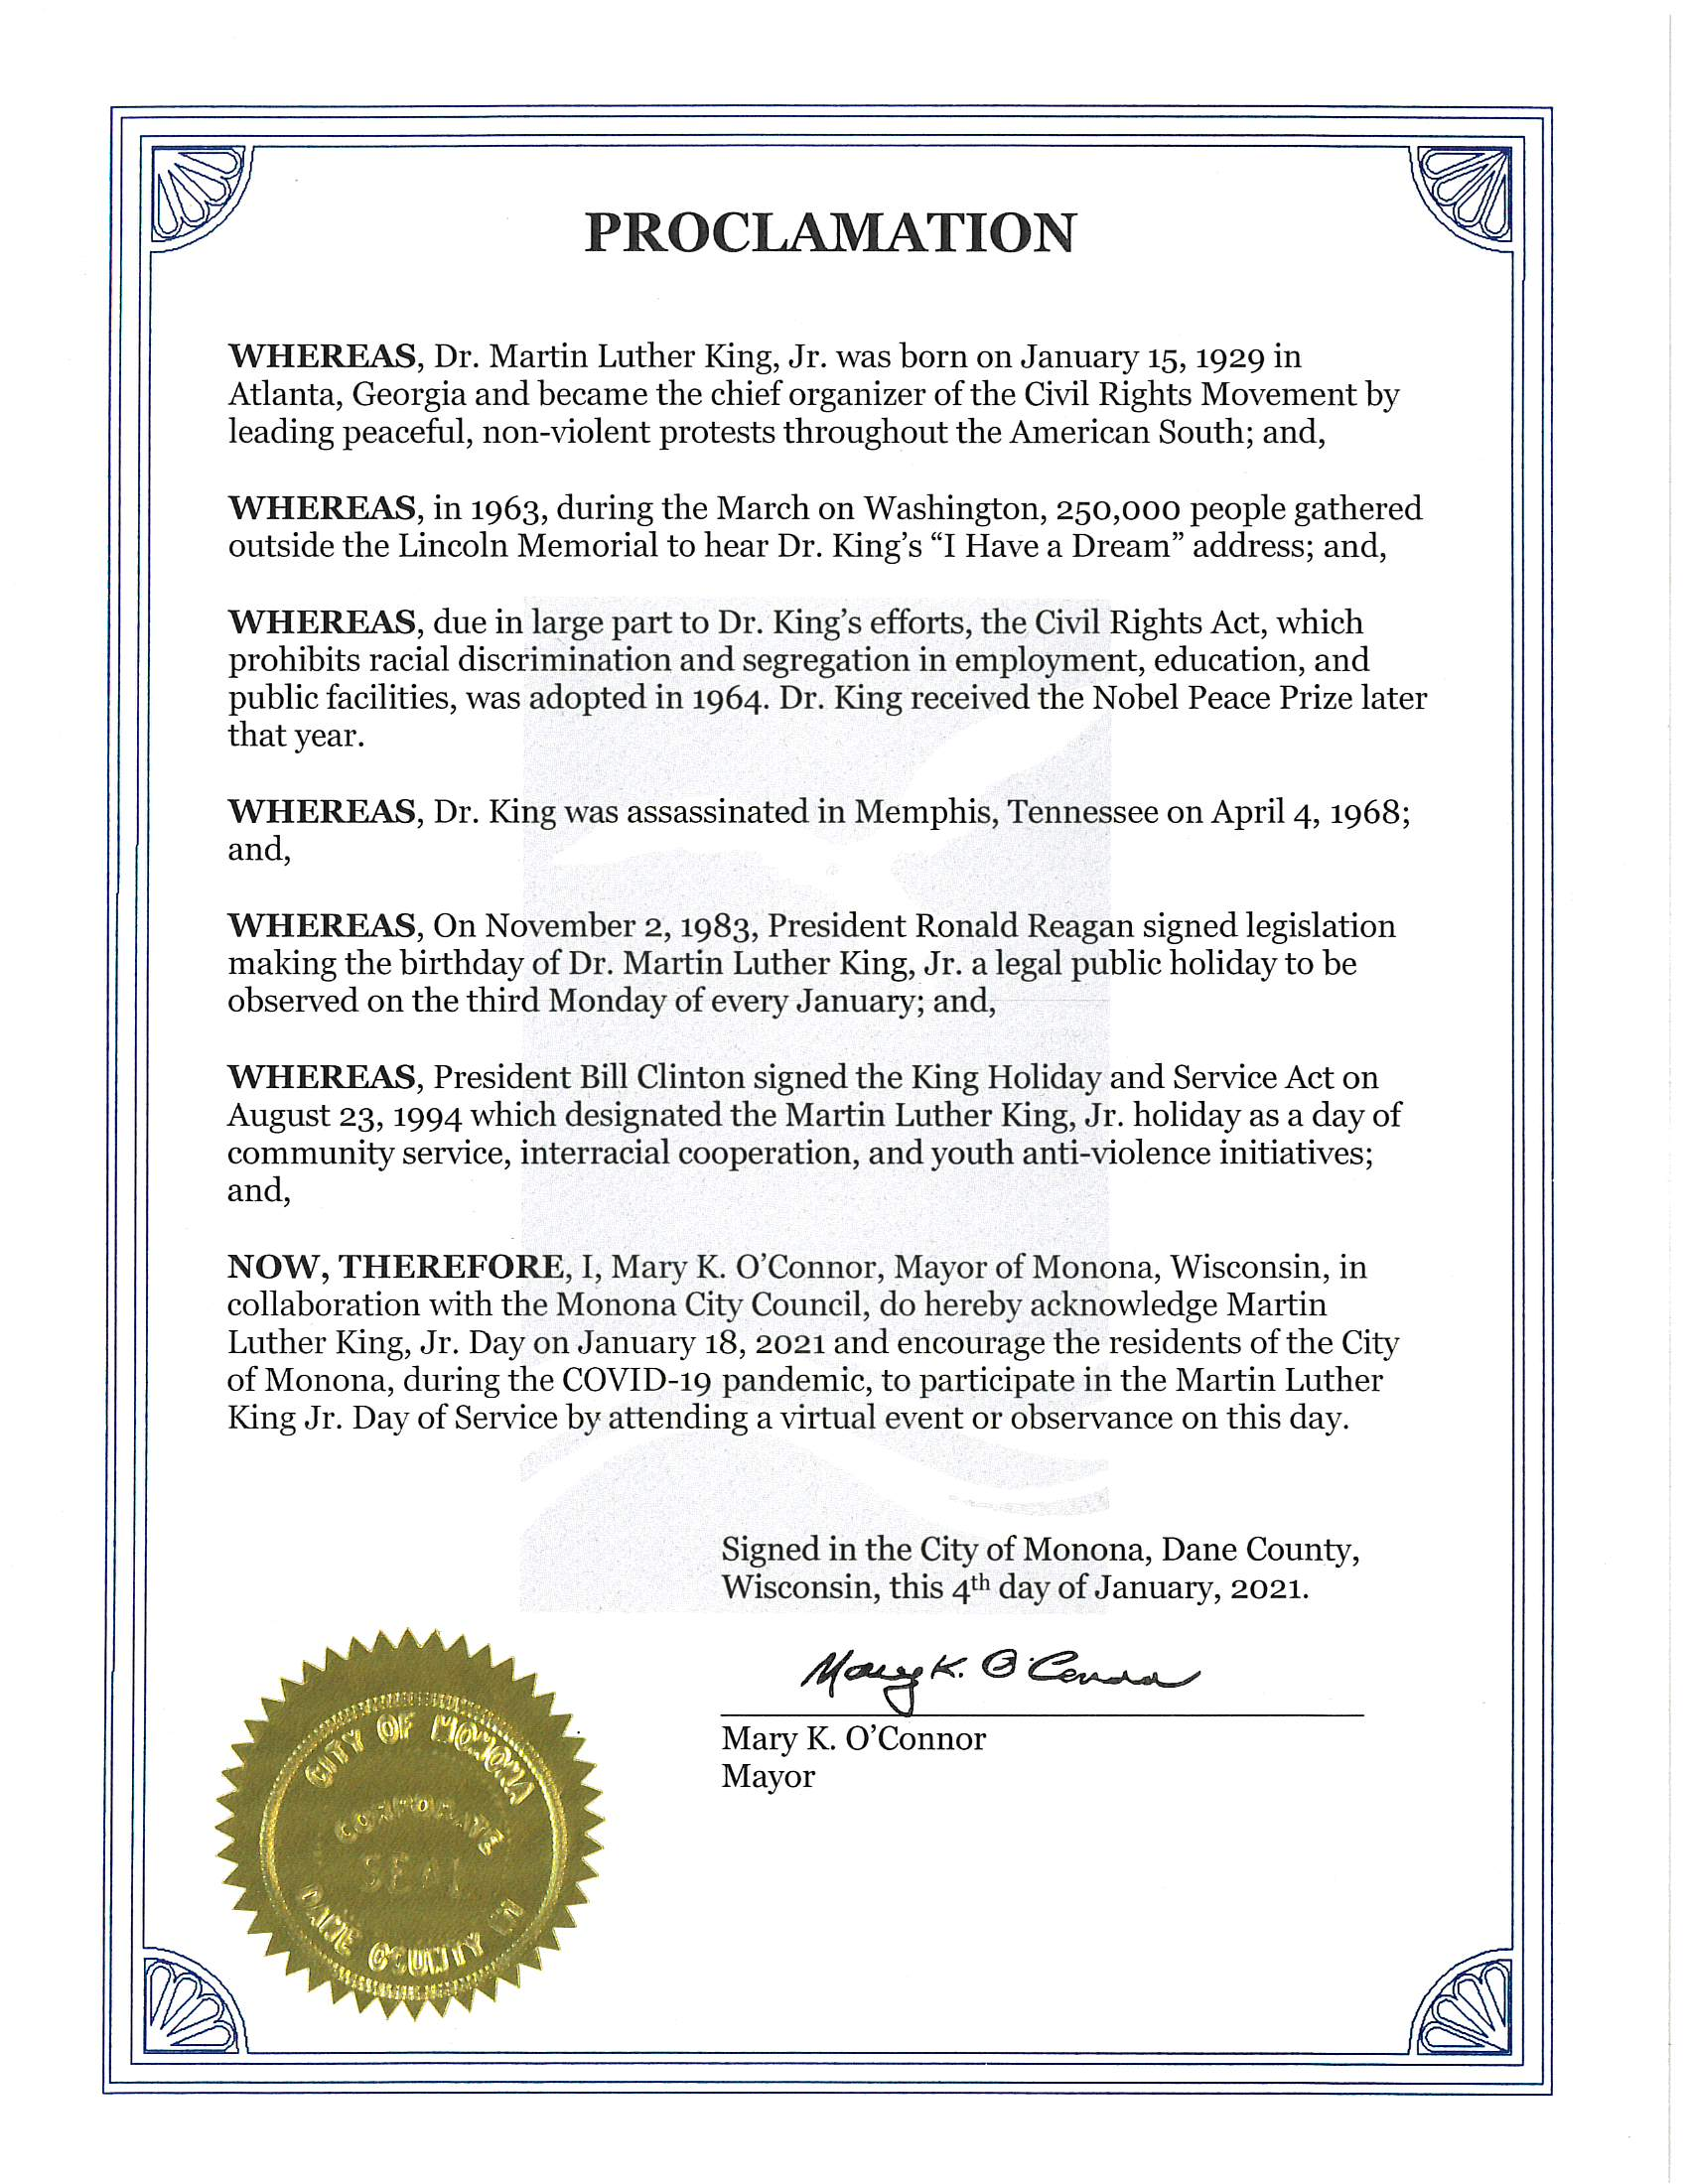 Proclamation Acknowledging Martin Luther King Jr. Day on Jan. 18, 2021